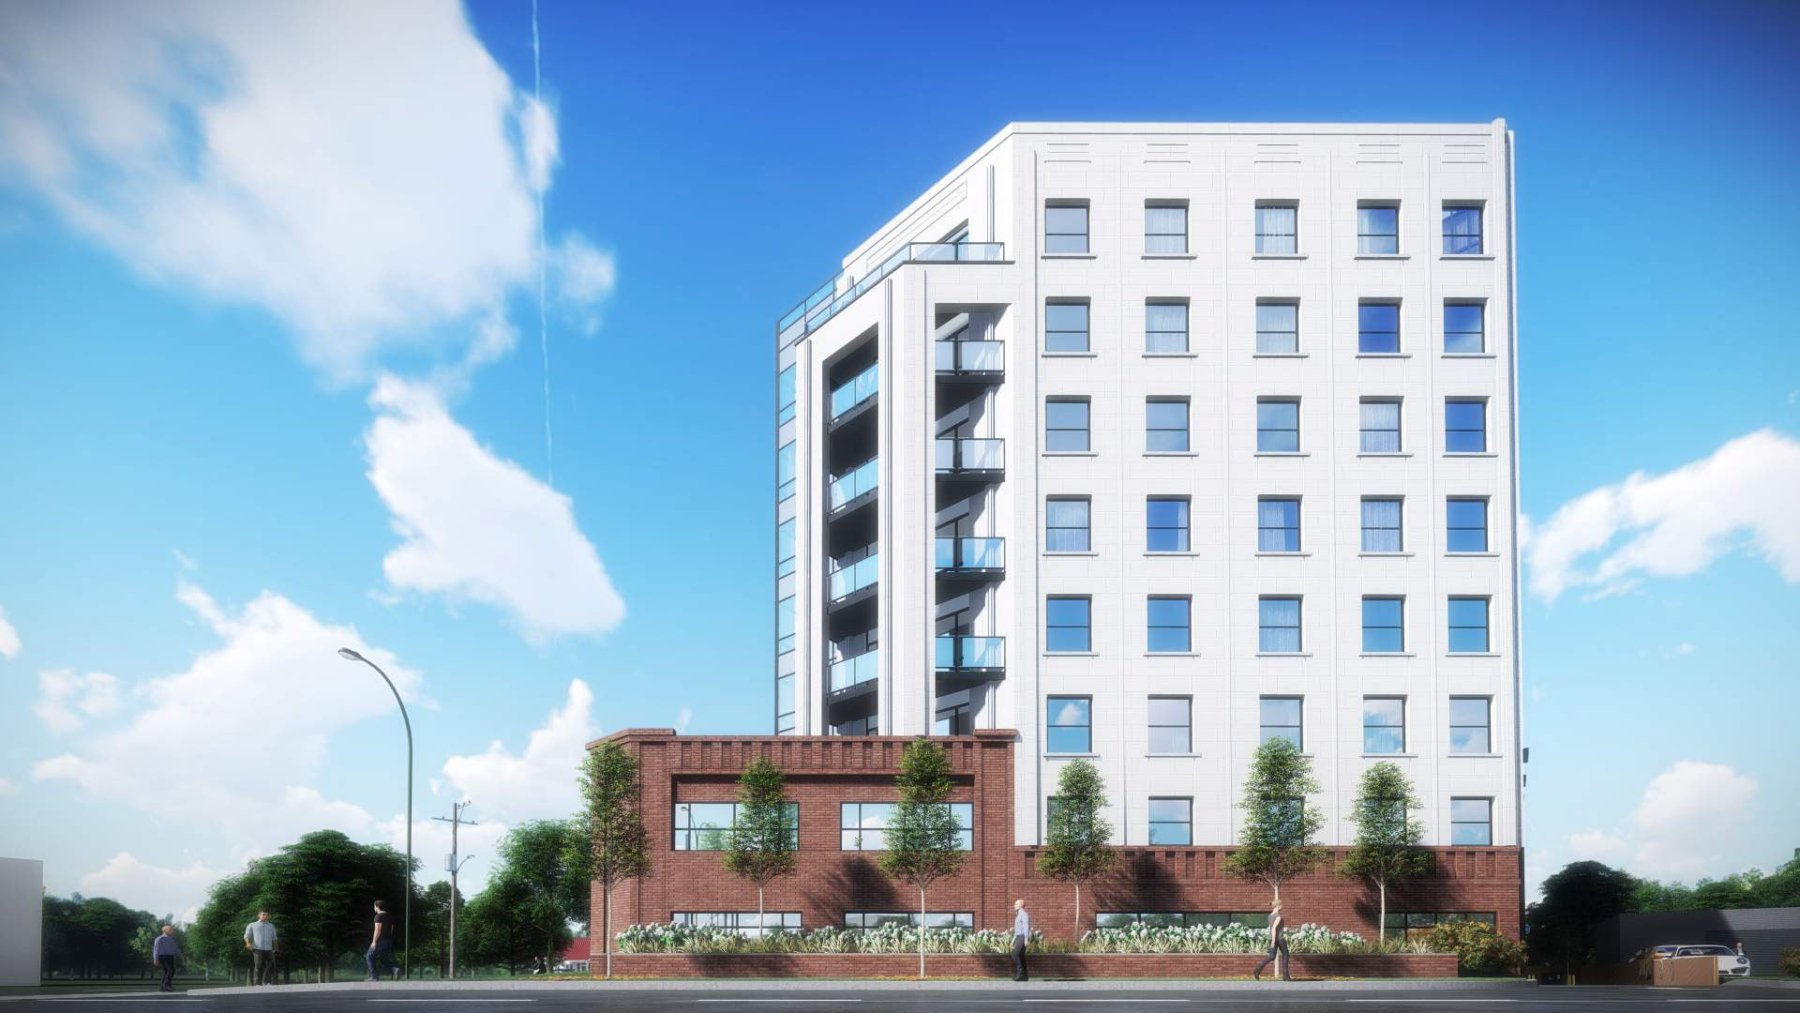 Exterior rendering of 4151 Kingston Road Condos building